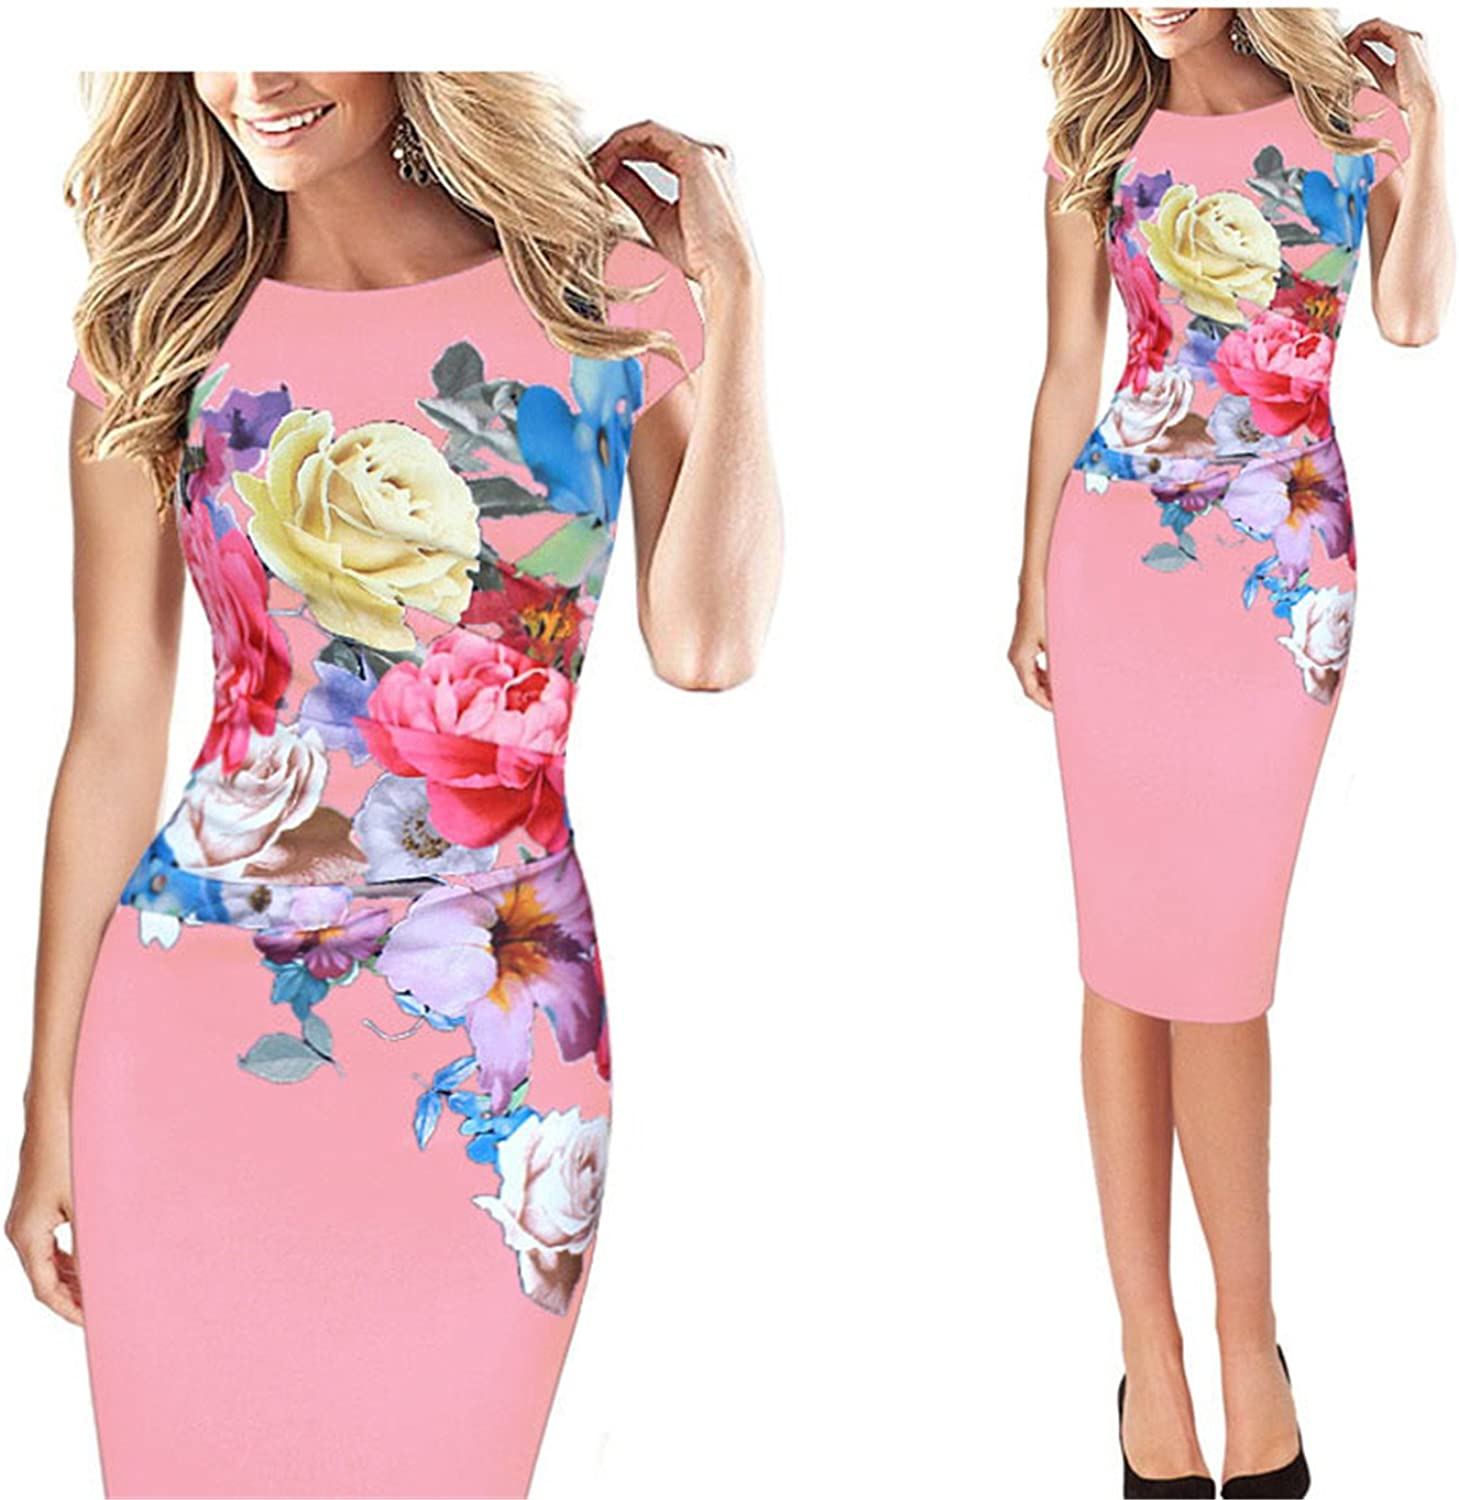 ylovego Womens Elegant Flower Floral Printed Ruched Cap Sleeve Ruffle Casual br